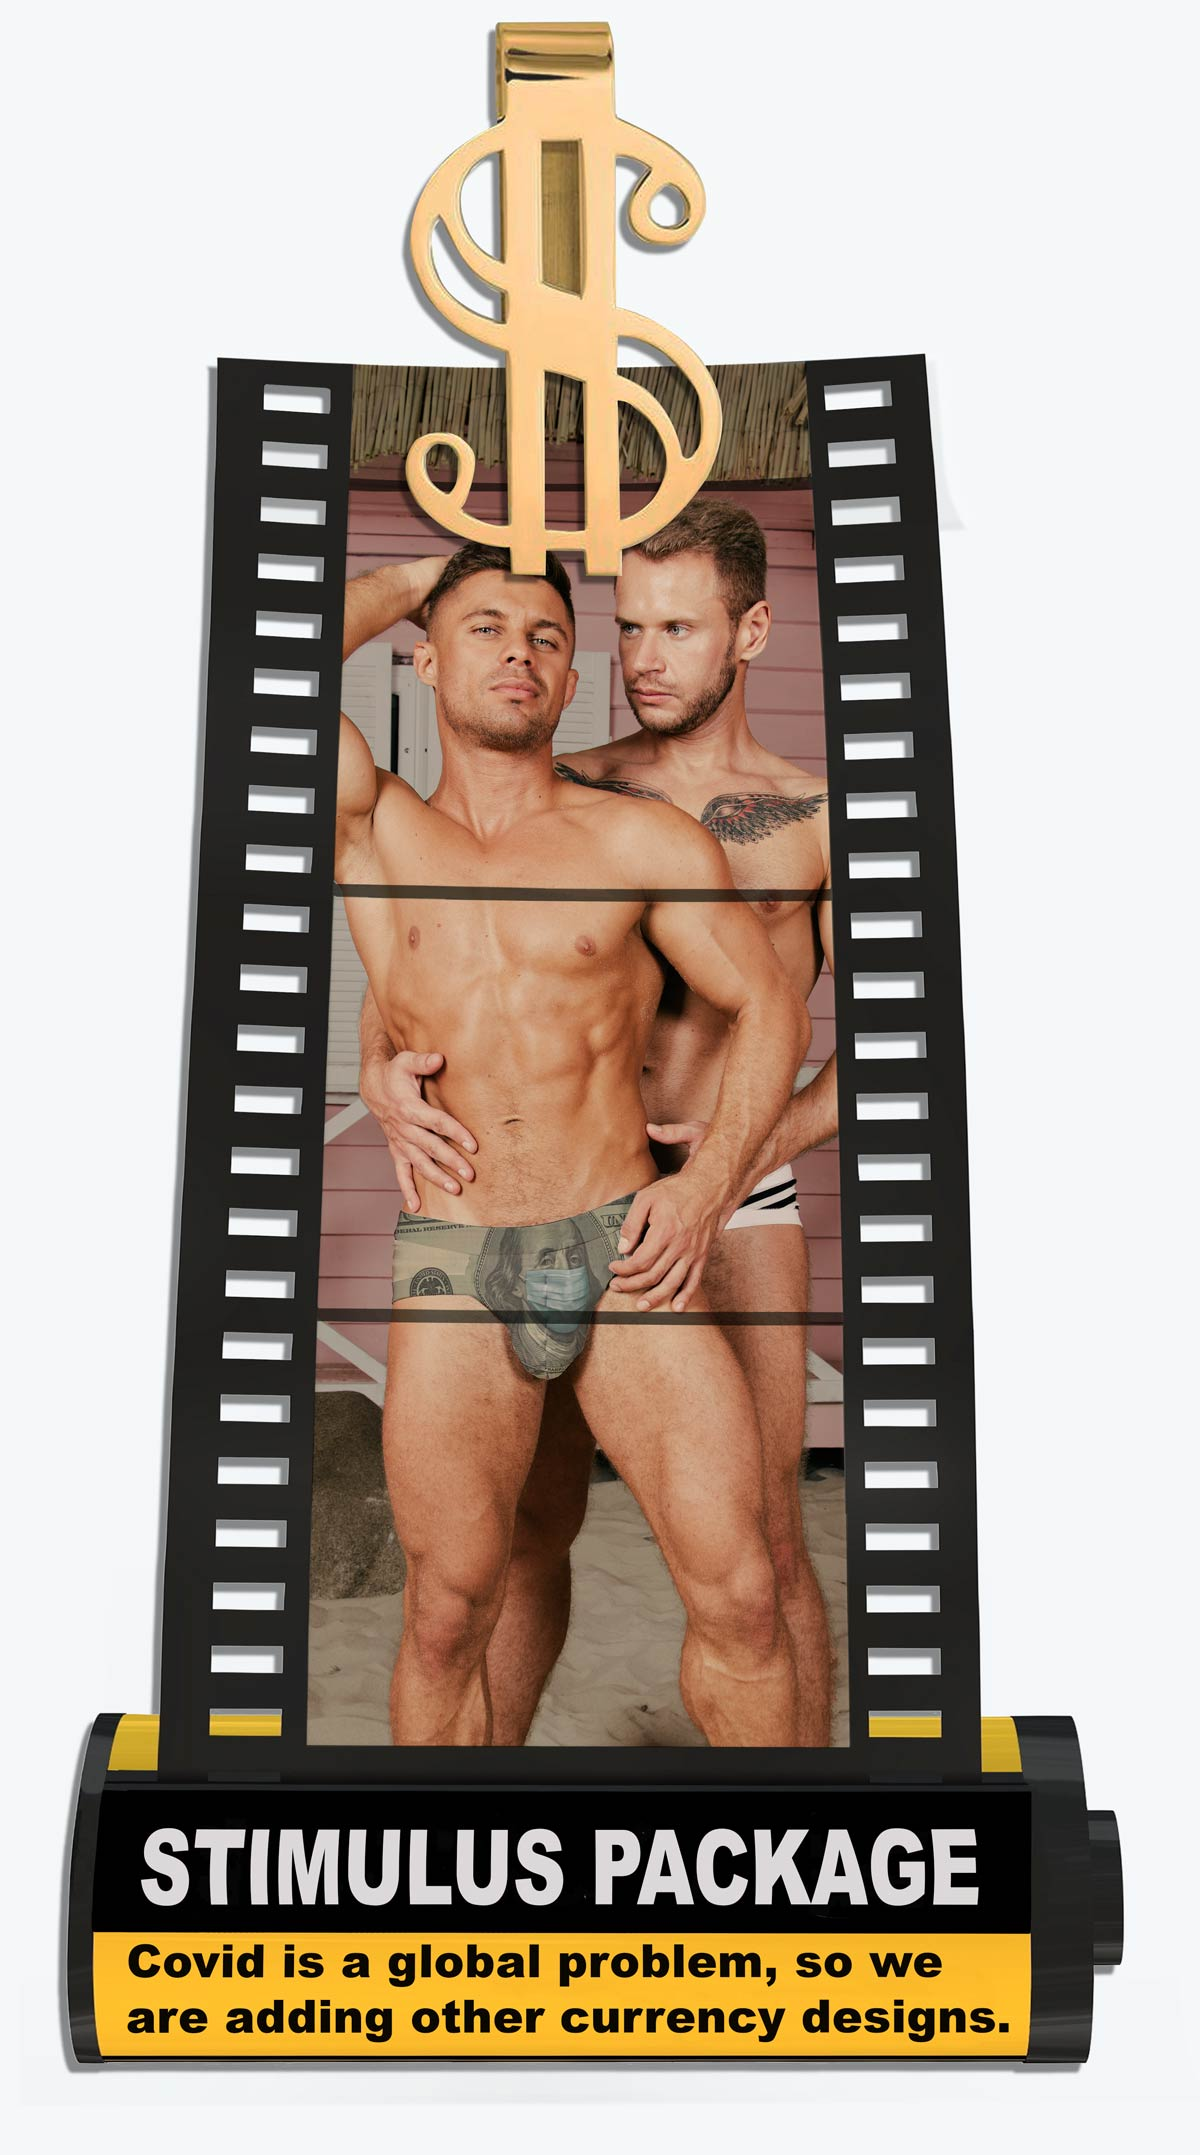 Two men wearing the Stimulus Package swimsuit which is a swimsuit that has a $100 bill with a mask as a design.